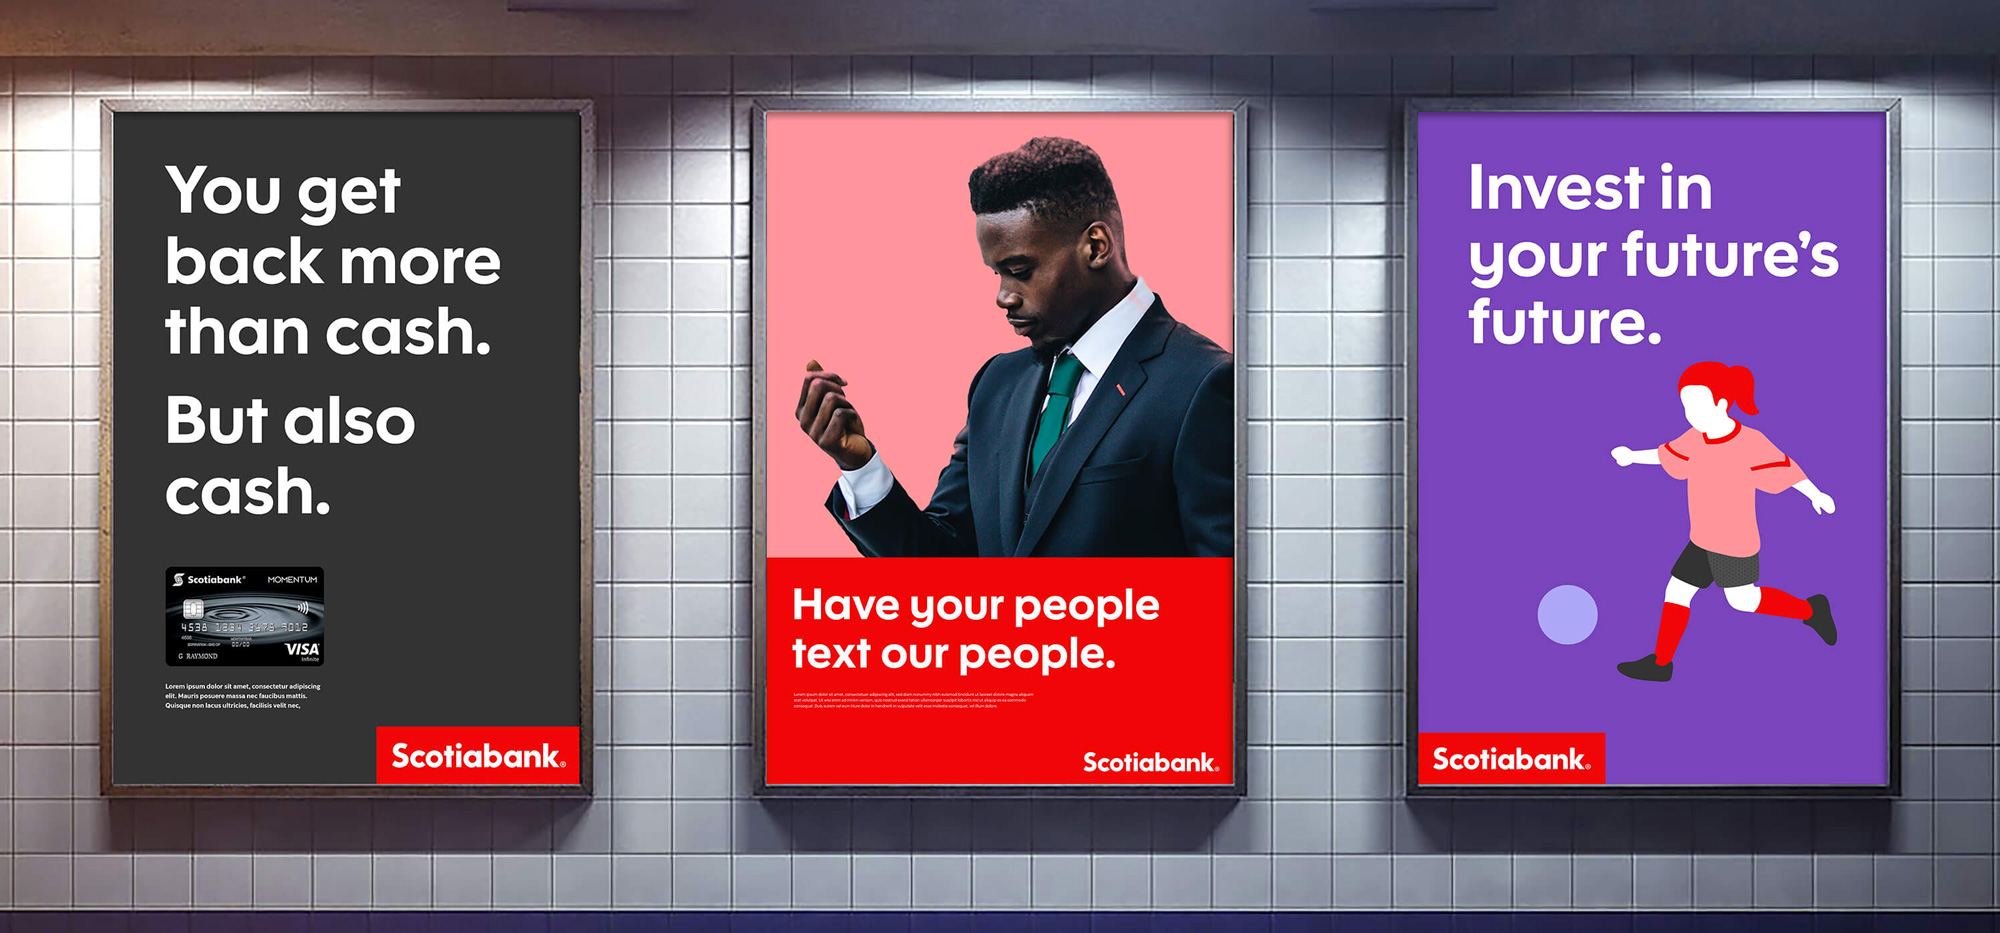 Brand New: New Logo and Identity for Scotiabank